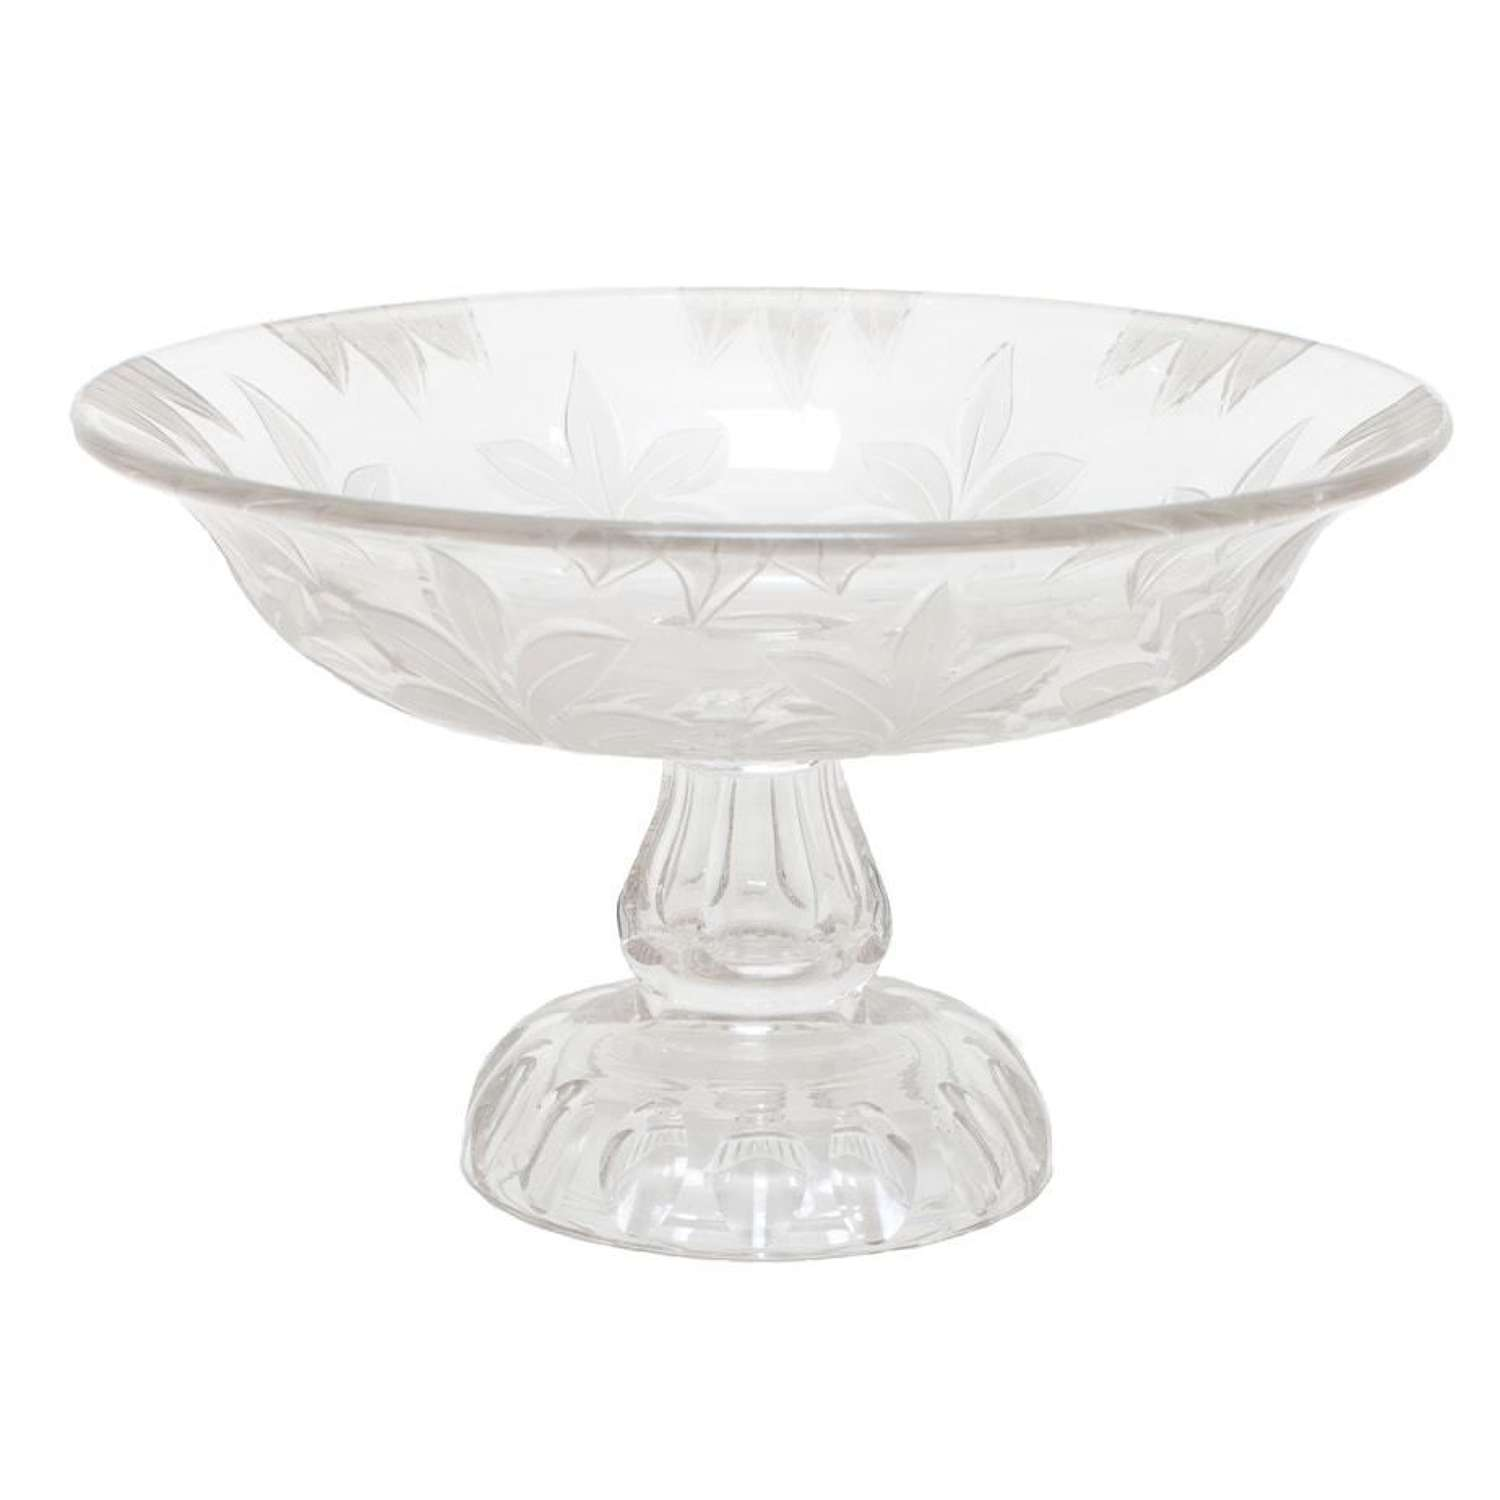 Victorian cut and etched glass comport